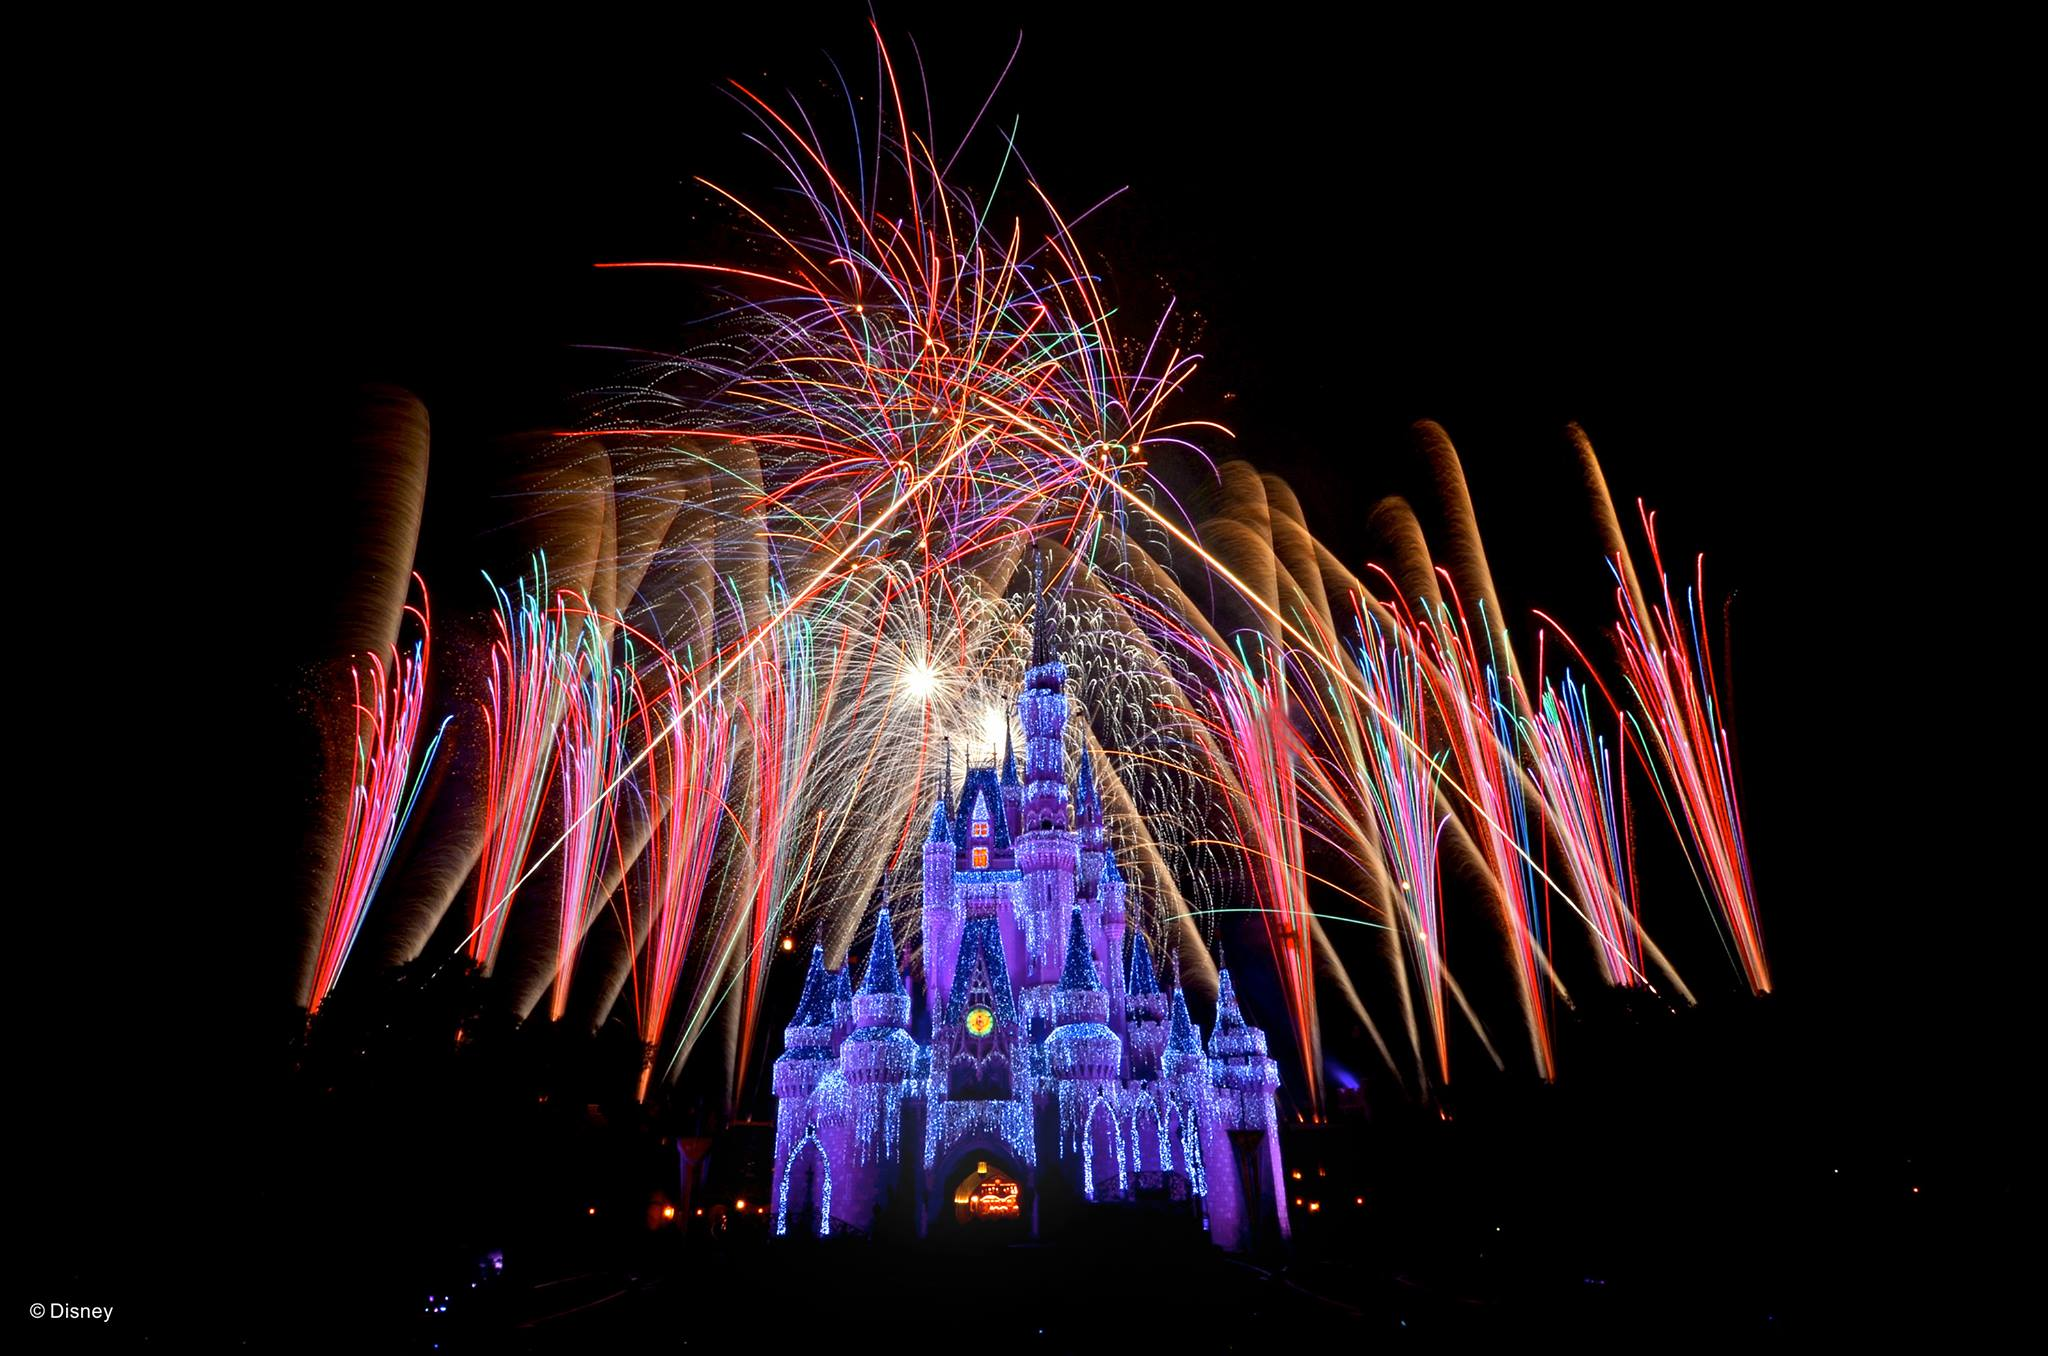 Selfie sticks and other weirdly random things banned at Disney World